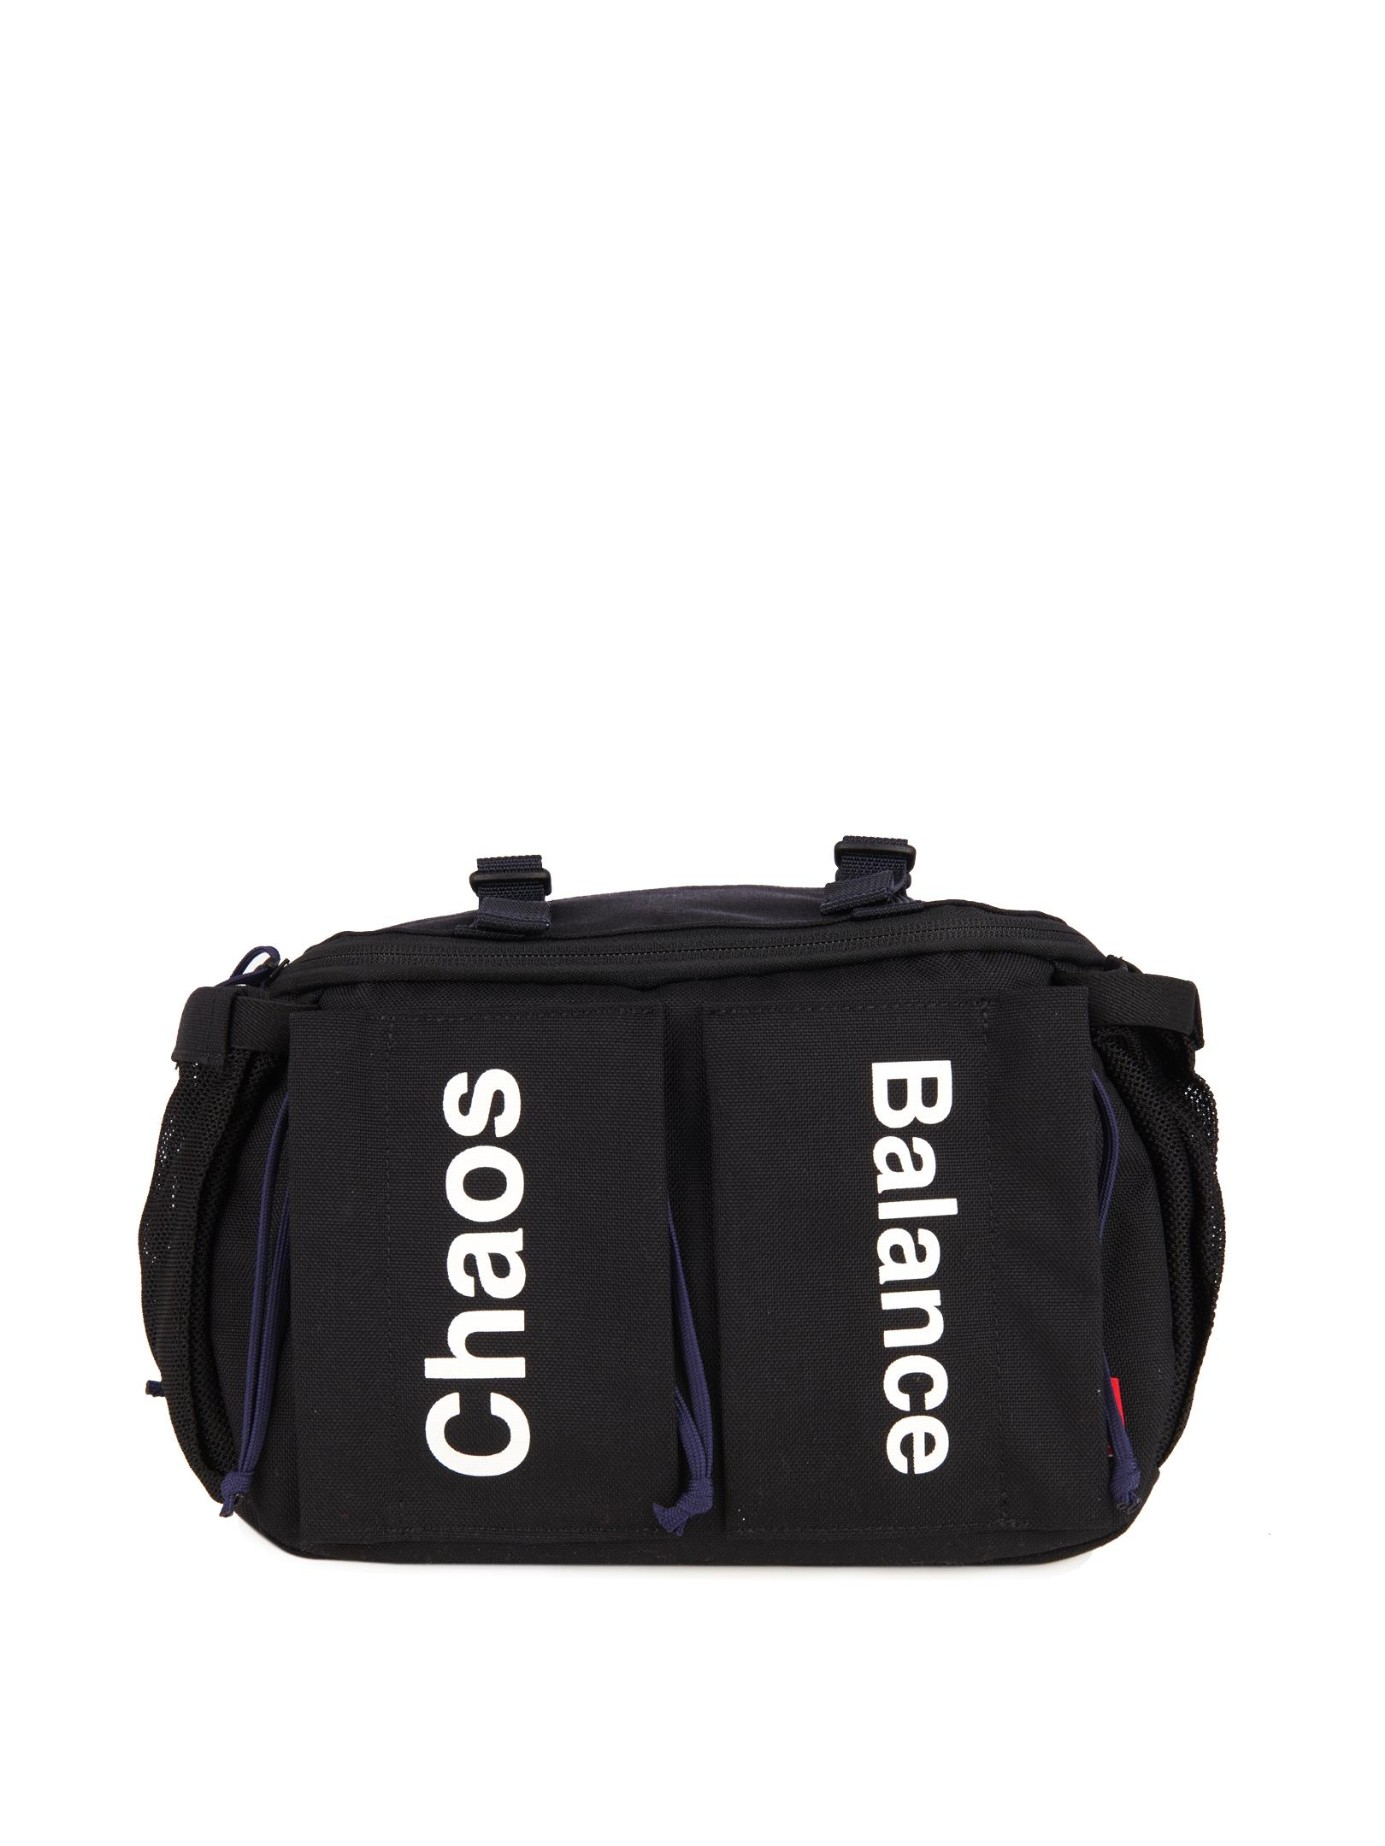 BAGS - Backpacks & Bum bags Kaos